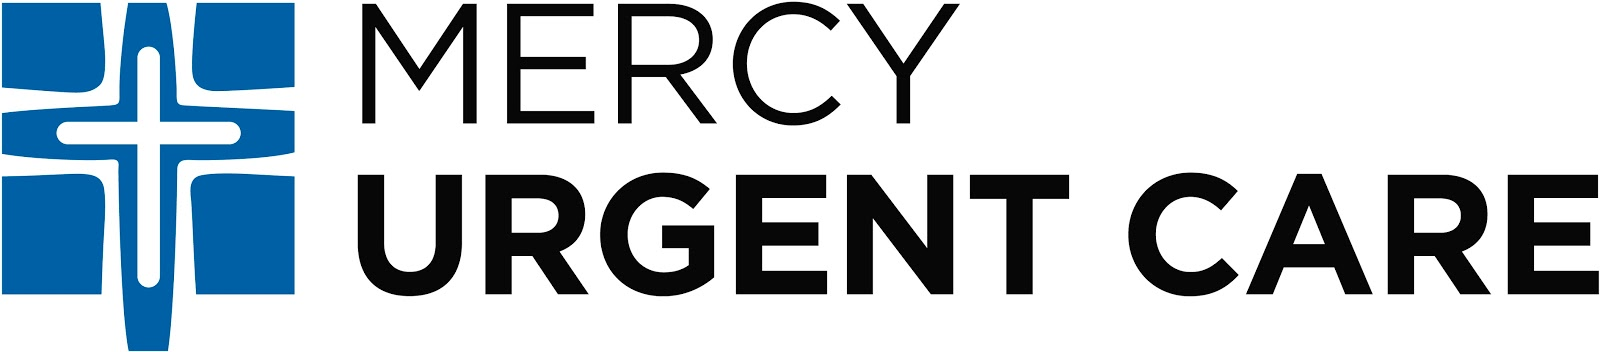 Sisters Of Mercy Urgent Care Announces Name Change Asheville Area